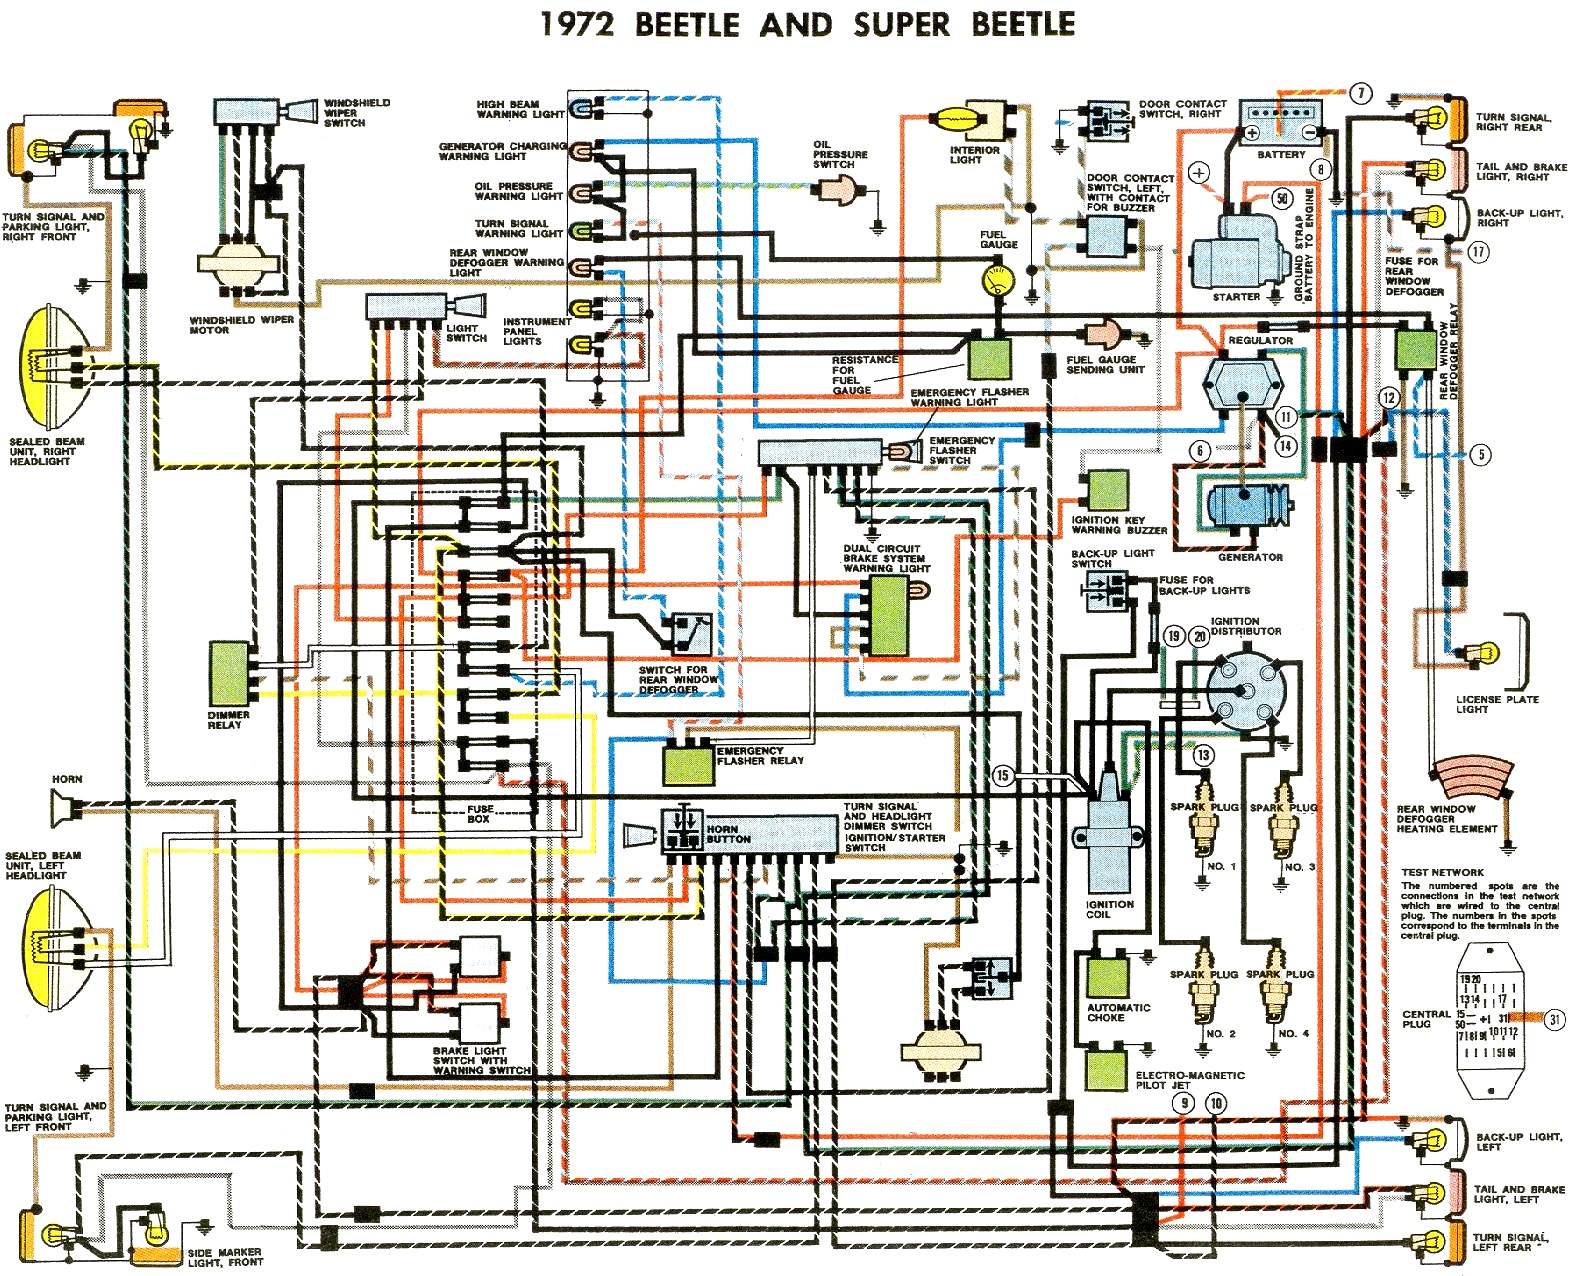 bug_72 volkswagen beetle questions back up light wiring? cargurus 1999 vw beetle wiring diagram at reclaimingppi.co